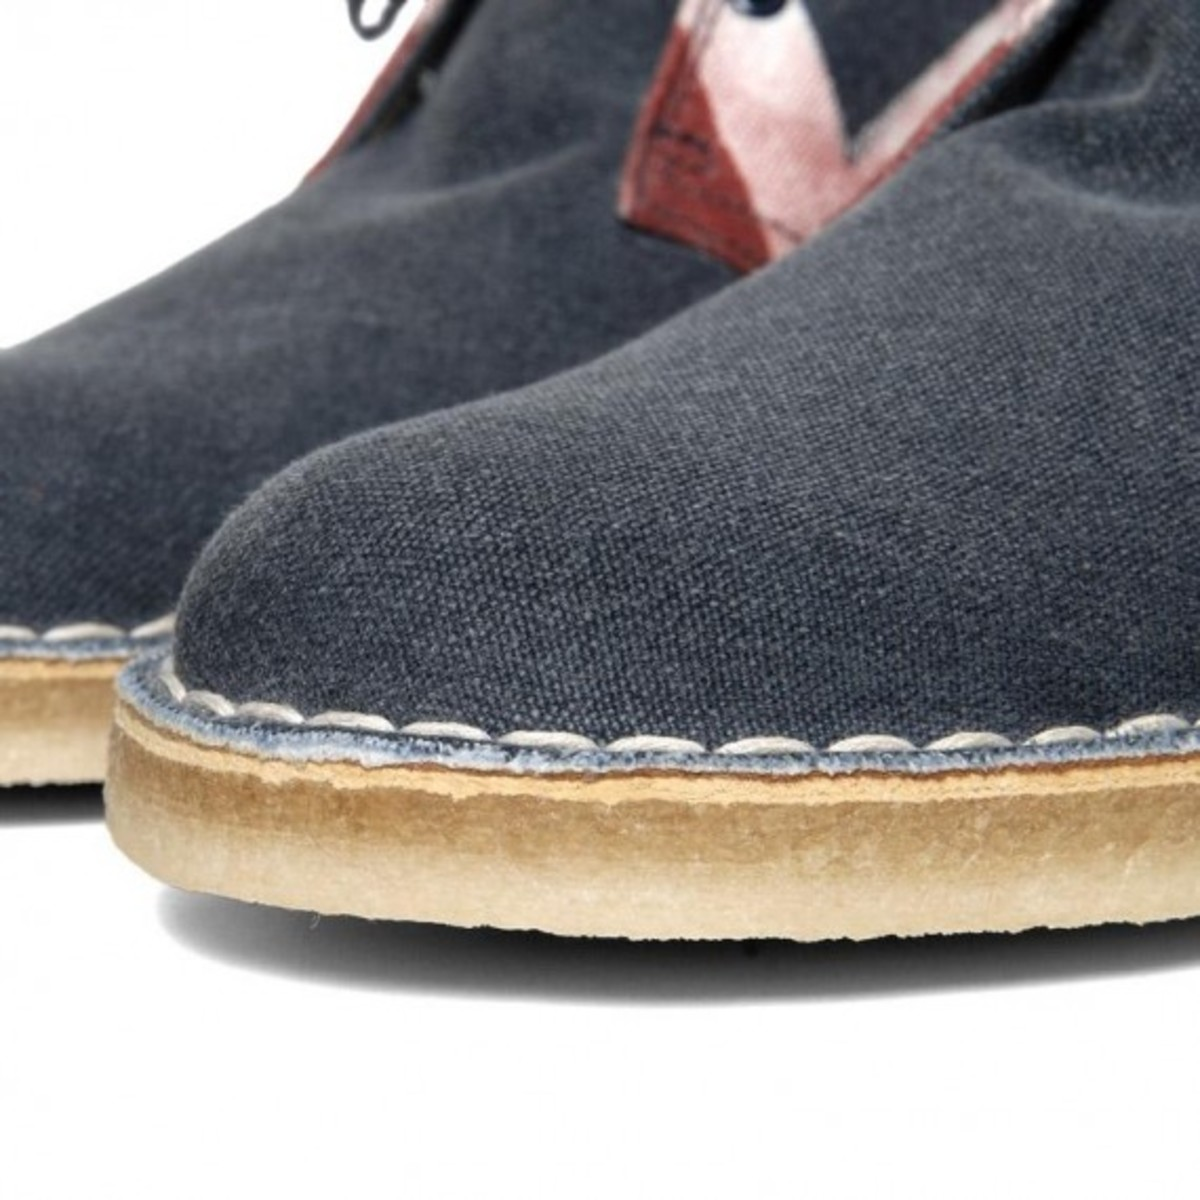 clarks-originals-desert-boot-punk-edition-06